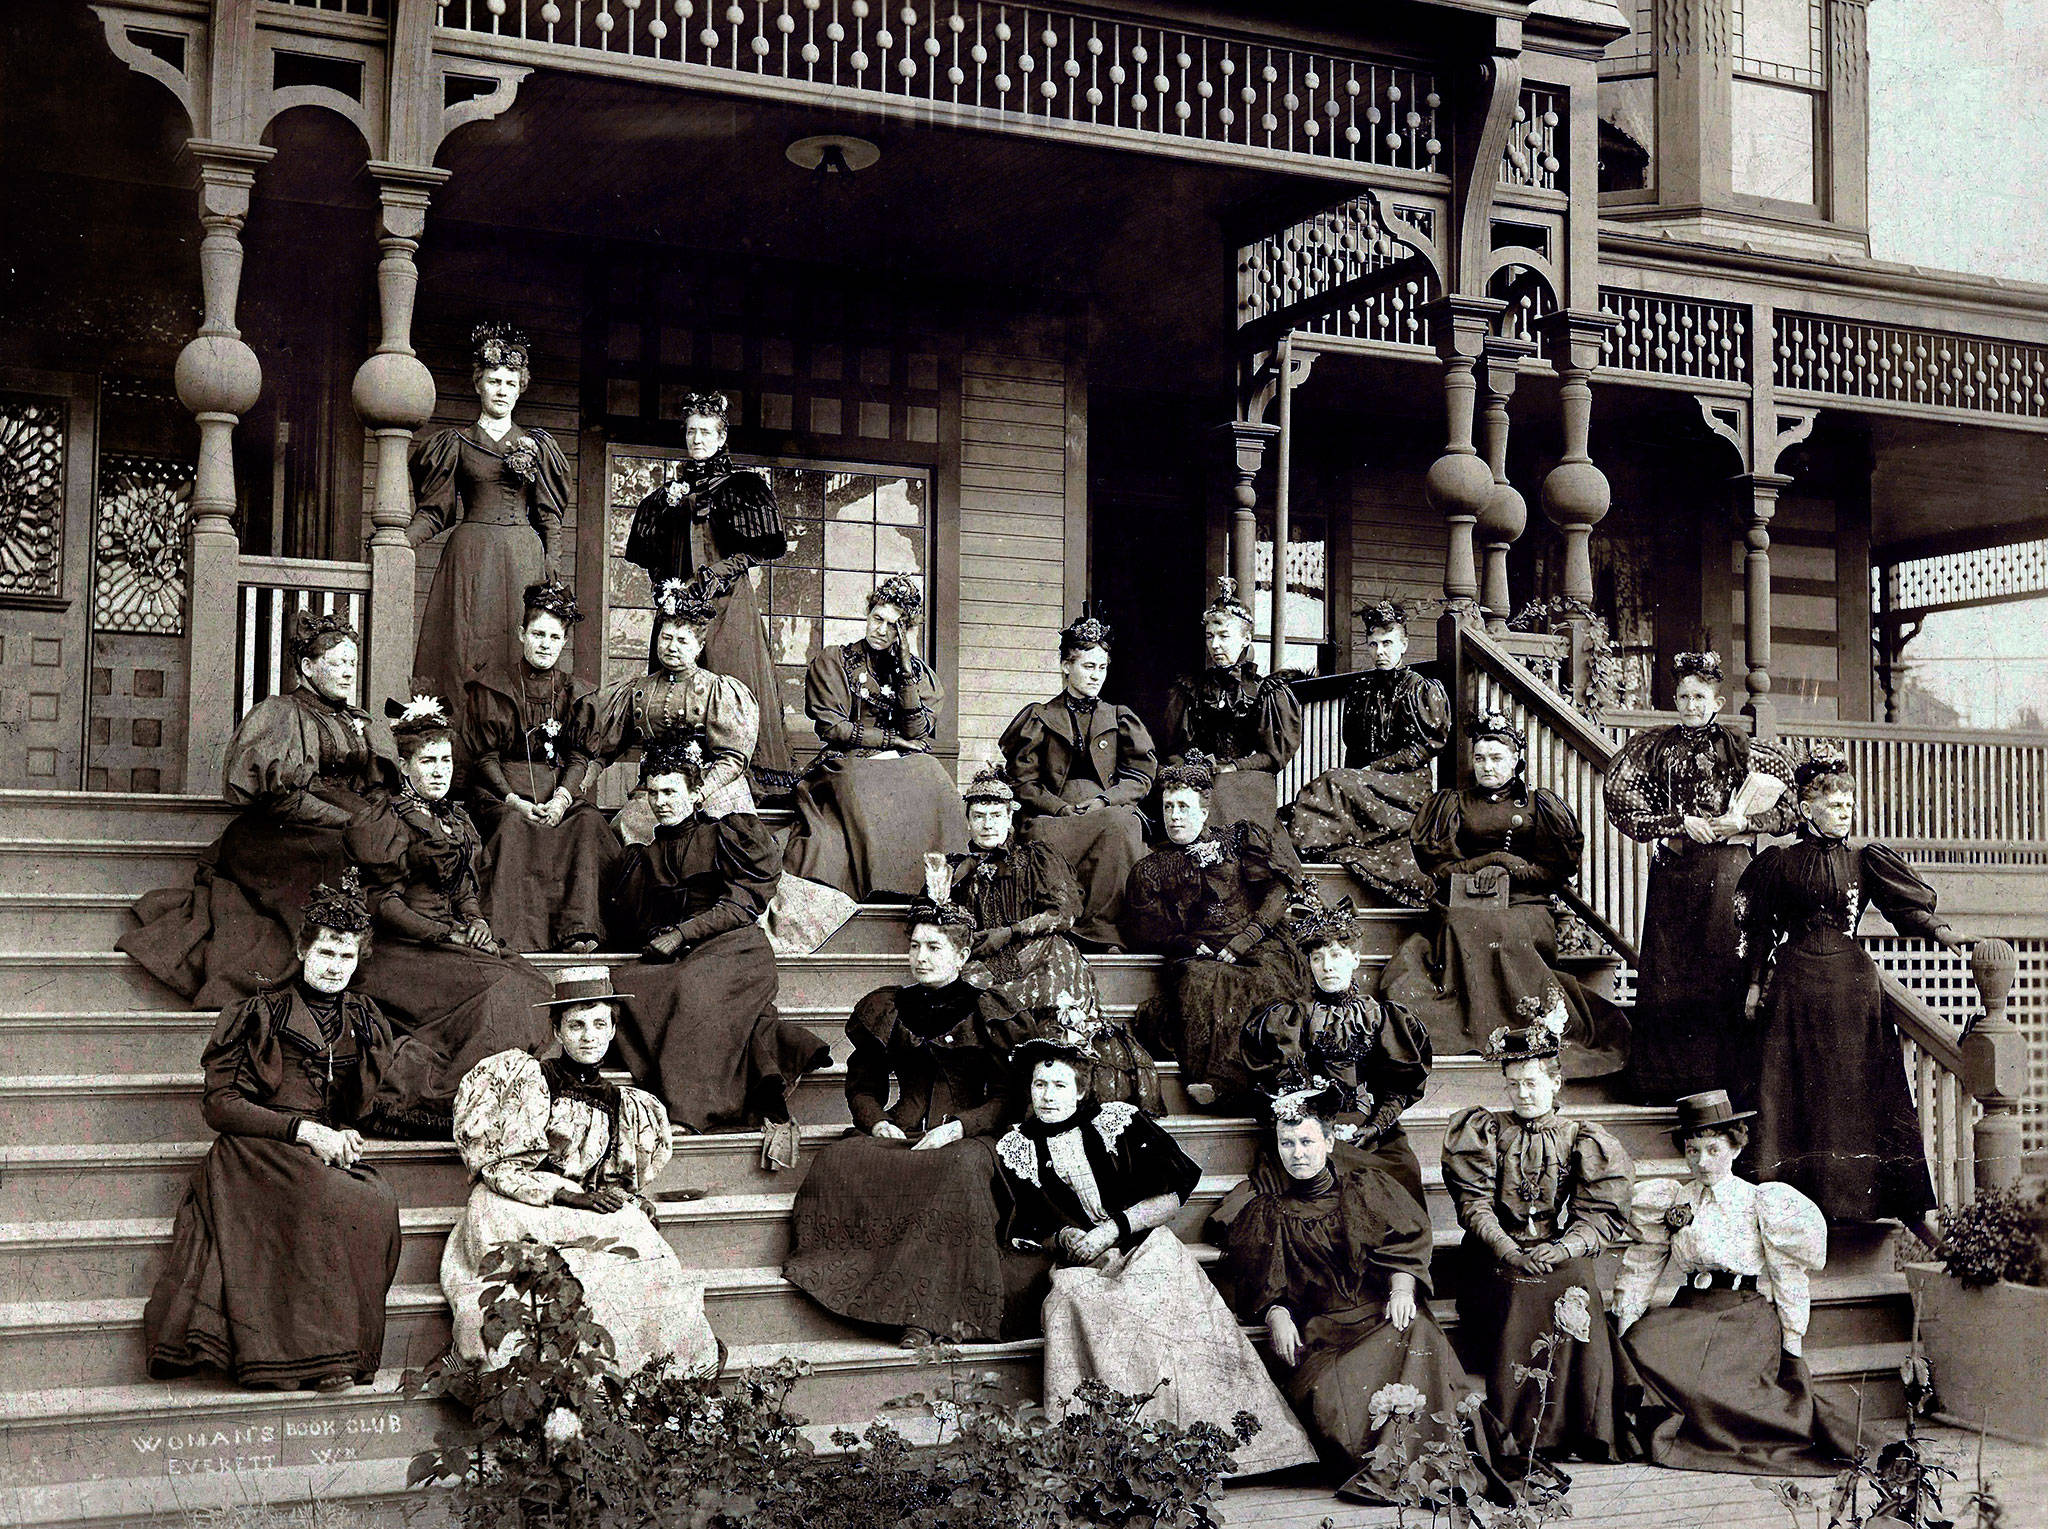 Early members of the Woman's Book Club of Everett are on the steps of the Hotel Monte Cristo in this photo taken in 1895, the year after the club was founded. Mary Lincoln Brown, second from right in top seated row, hosted their first gathering on June 10, 1894.